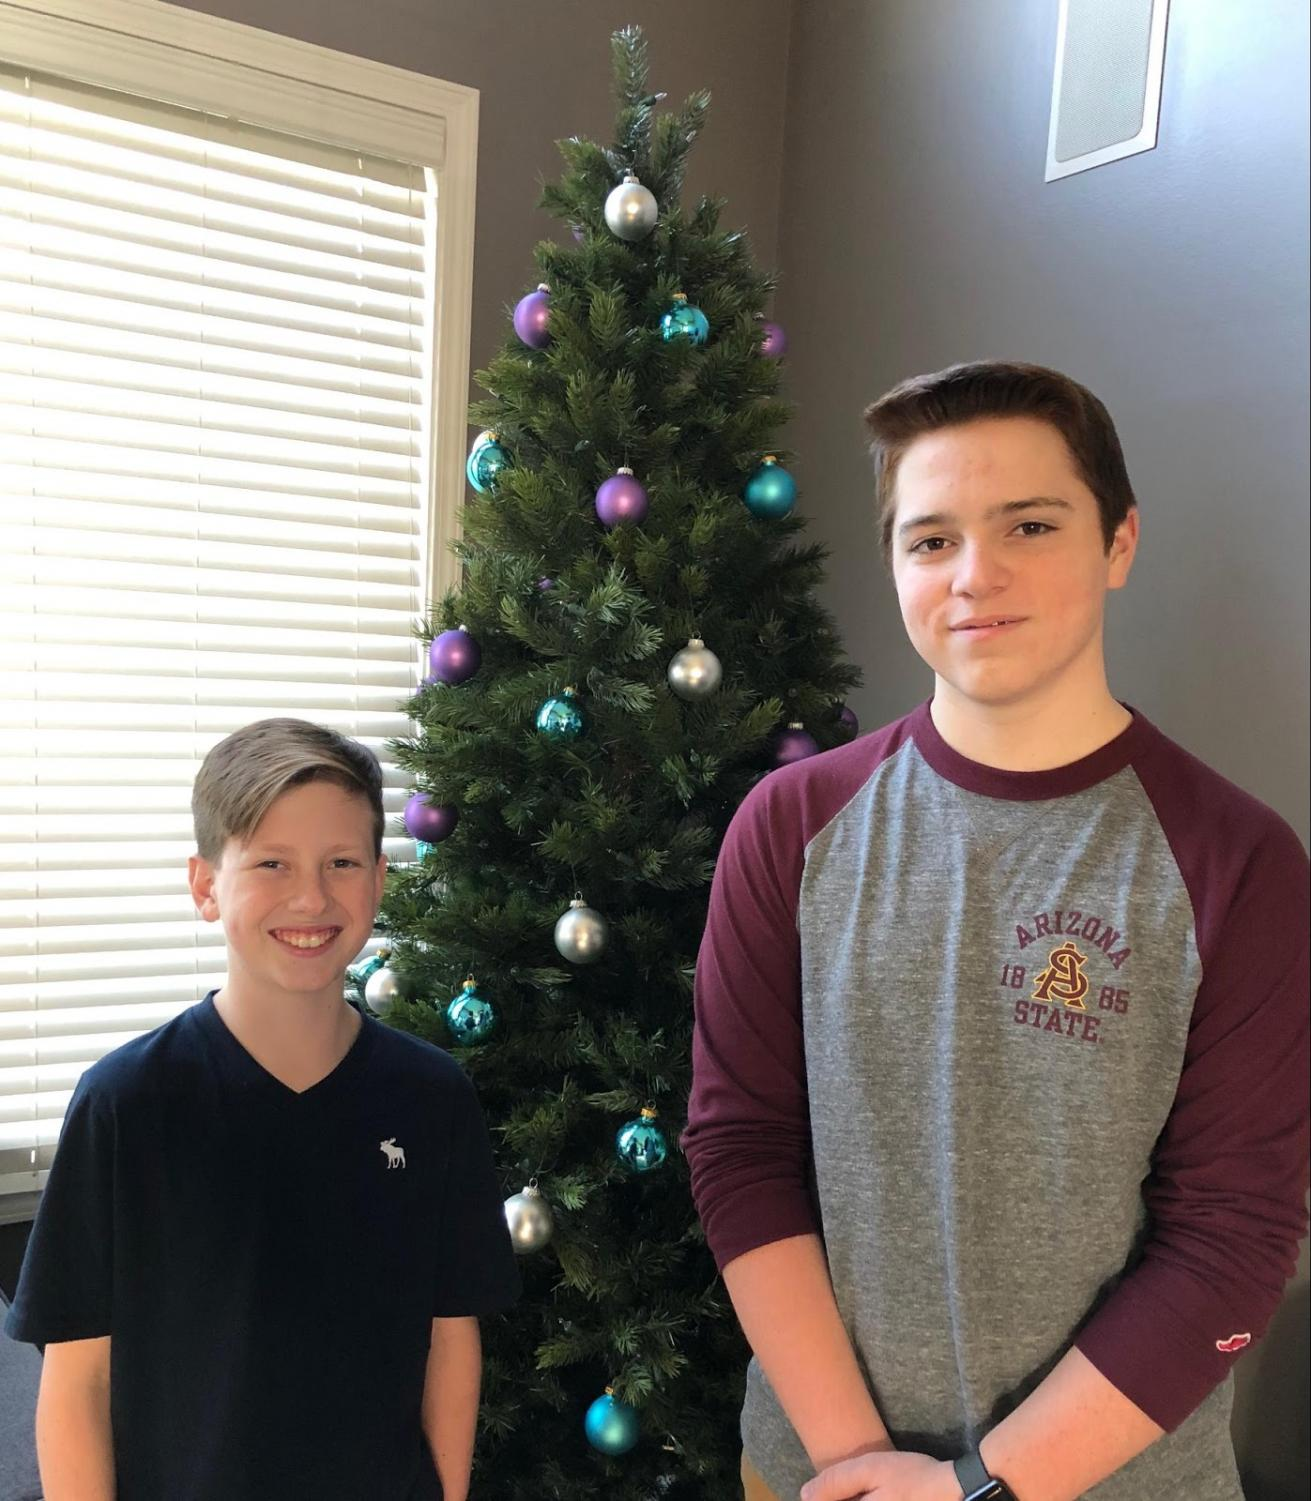 Two of The Bite reporters (7th grade), Josh Arsaro and Nate Sulak pose in front of a Christmas Tree at Nate's home.